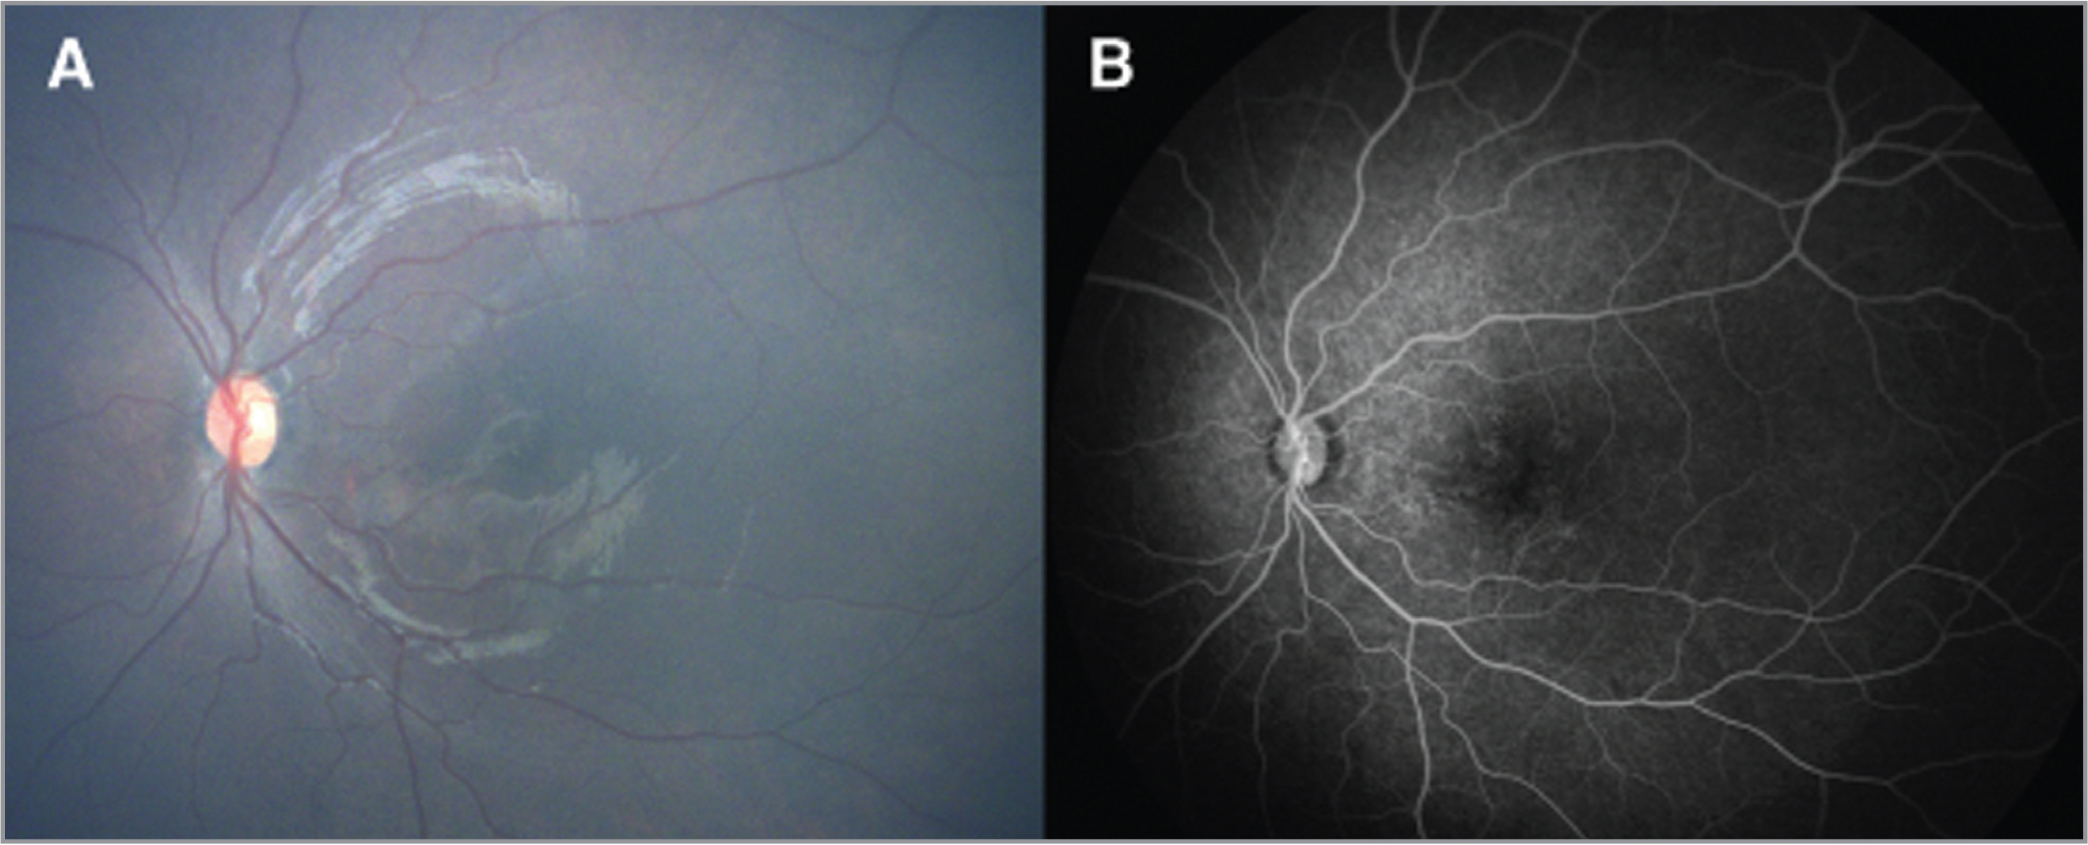 Patient 2. Wide-angle fundus and fluorescein angiography images obtained from an infant with congenital Zika syndrome. (A) Unremarkable fundus in the left eye (OS). (B) Areas of window defects in the macula OS.